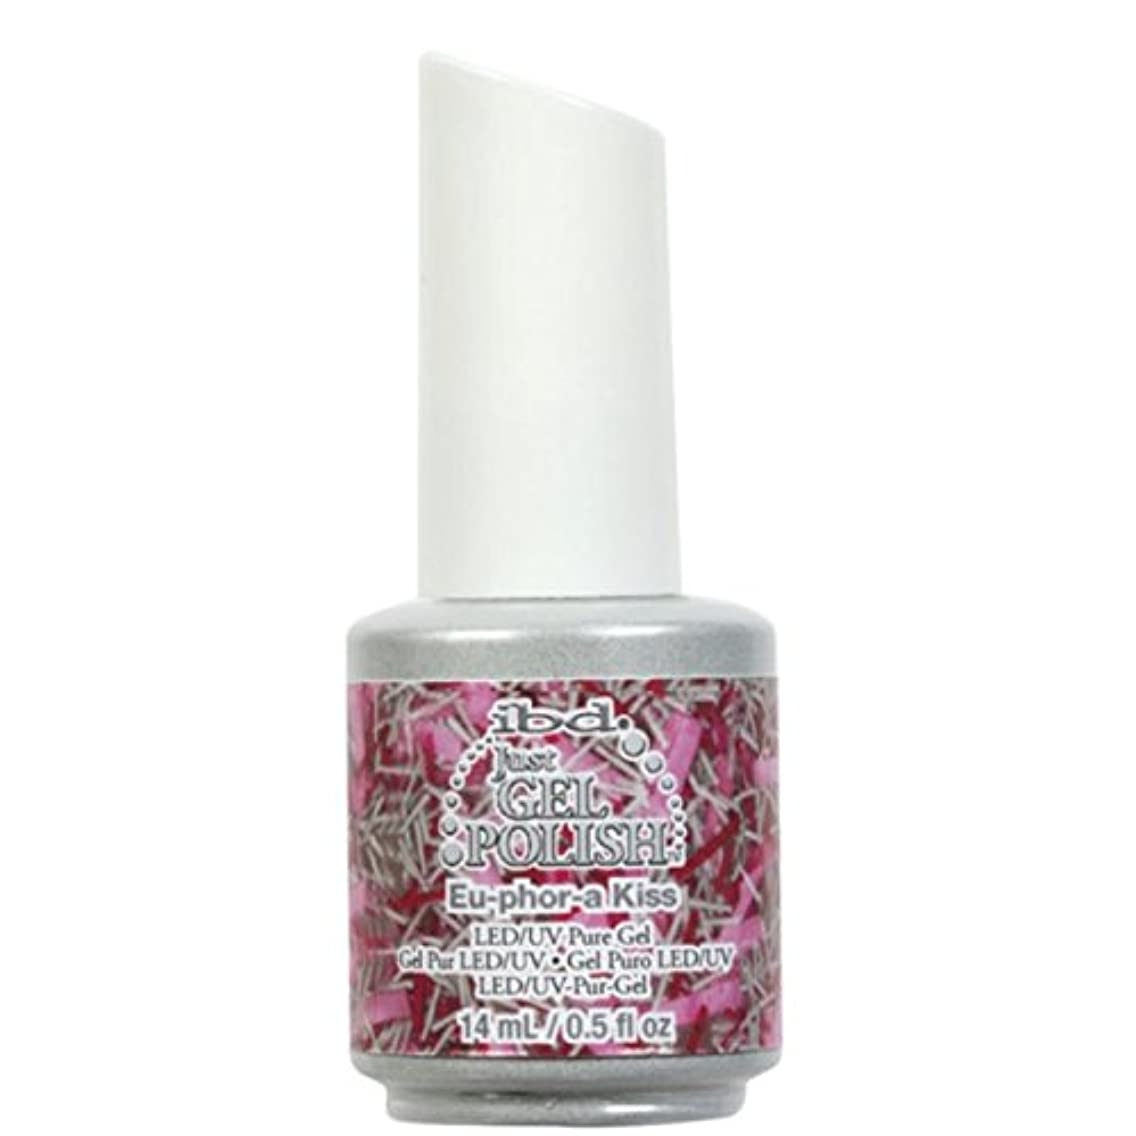 悪性スペイン語ダンプibd Just Gel Nail Polish - Eu-Phor-A Kiss - 14ml / 0.5oz